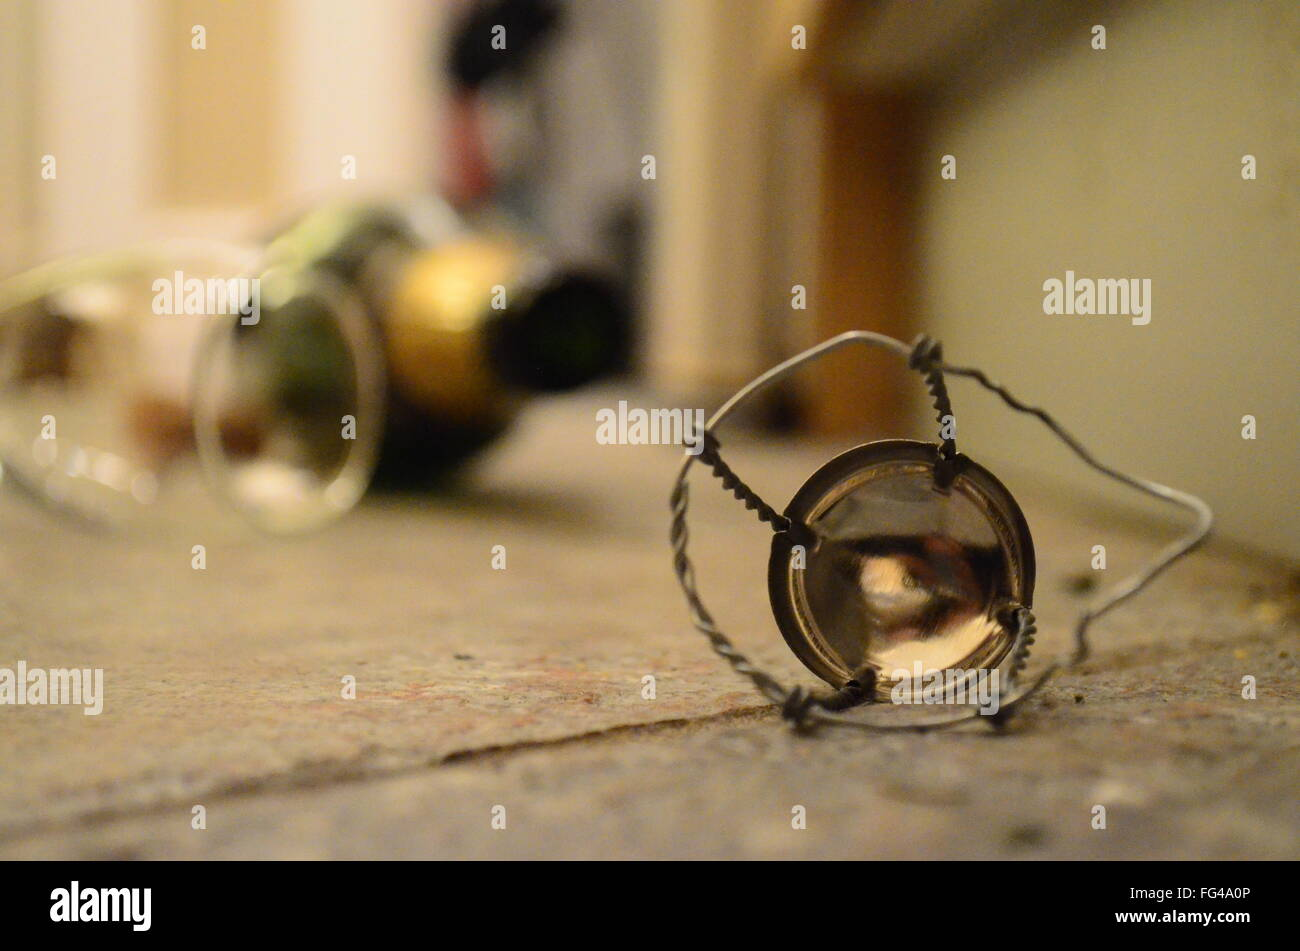 Drink - Stock Image